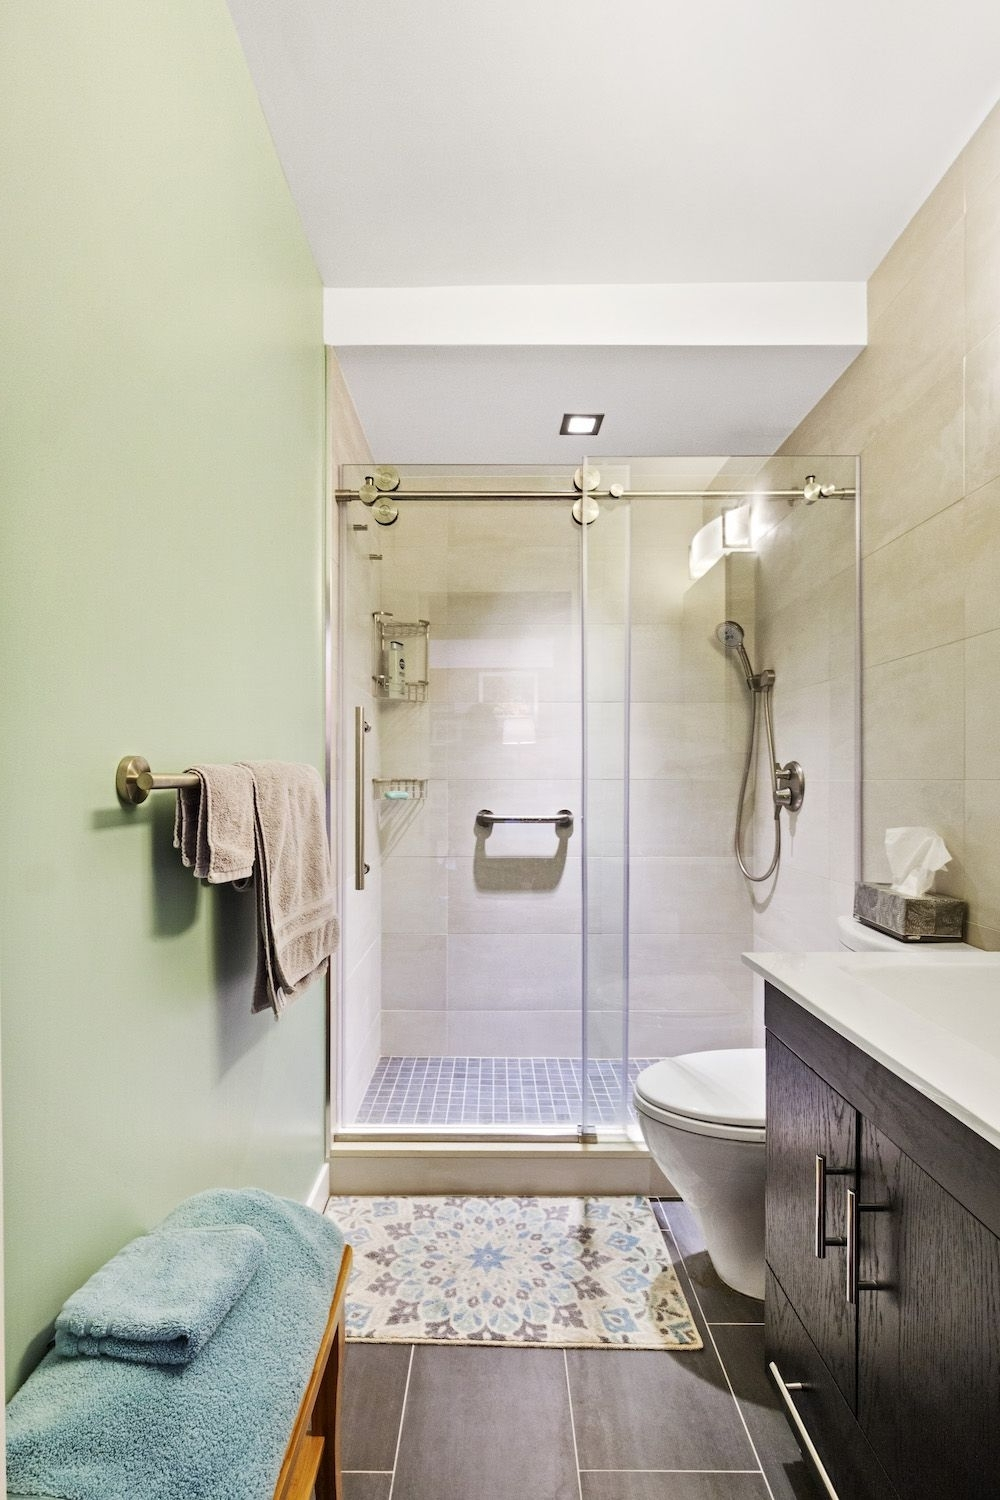 A Small, Windowless Bathroom Expands After Renovating With 30+ Windowless Bathroom Ideas